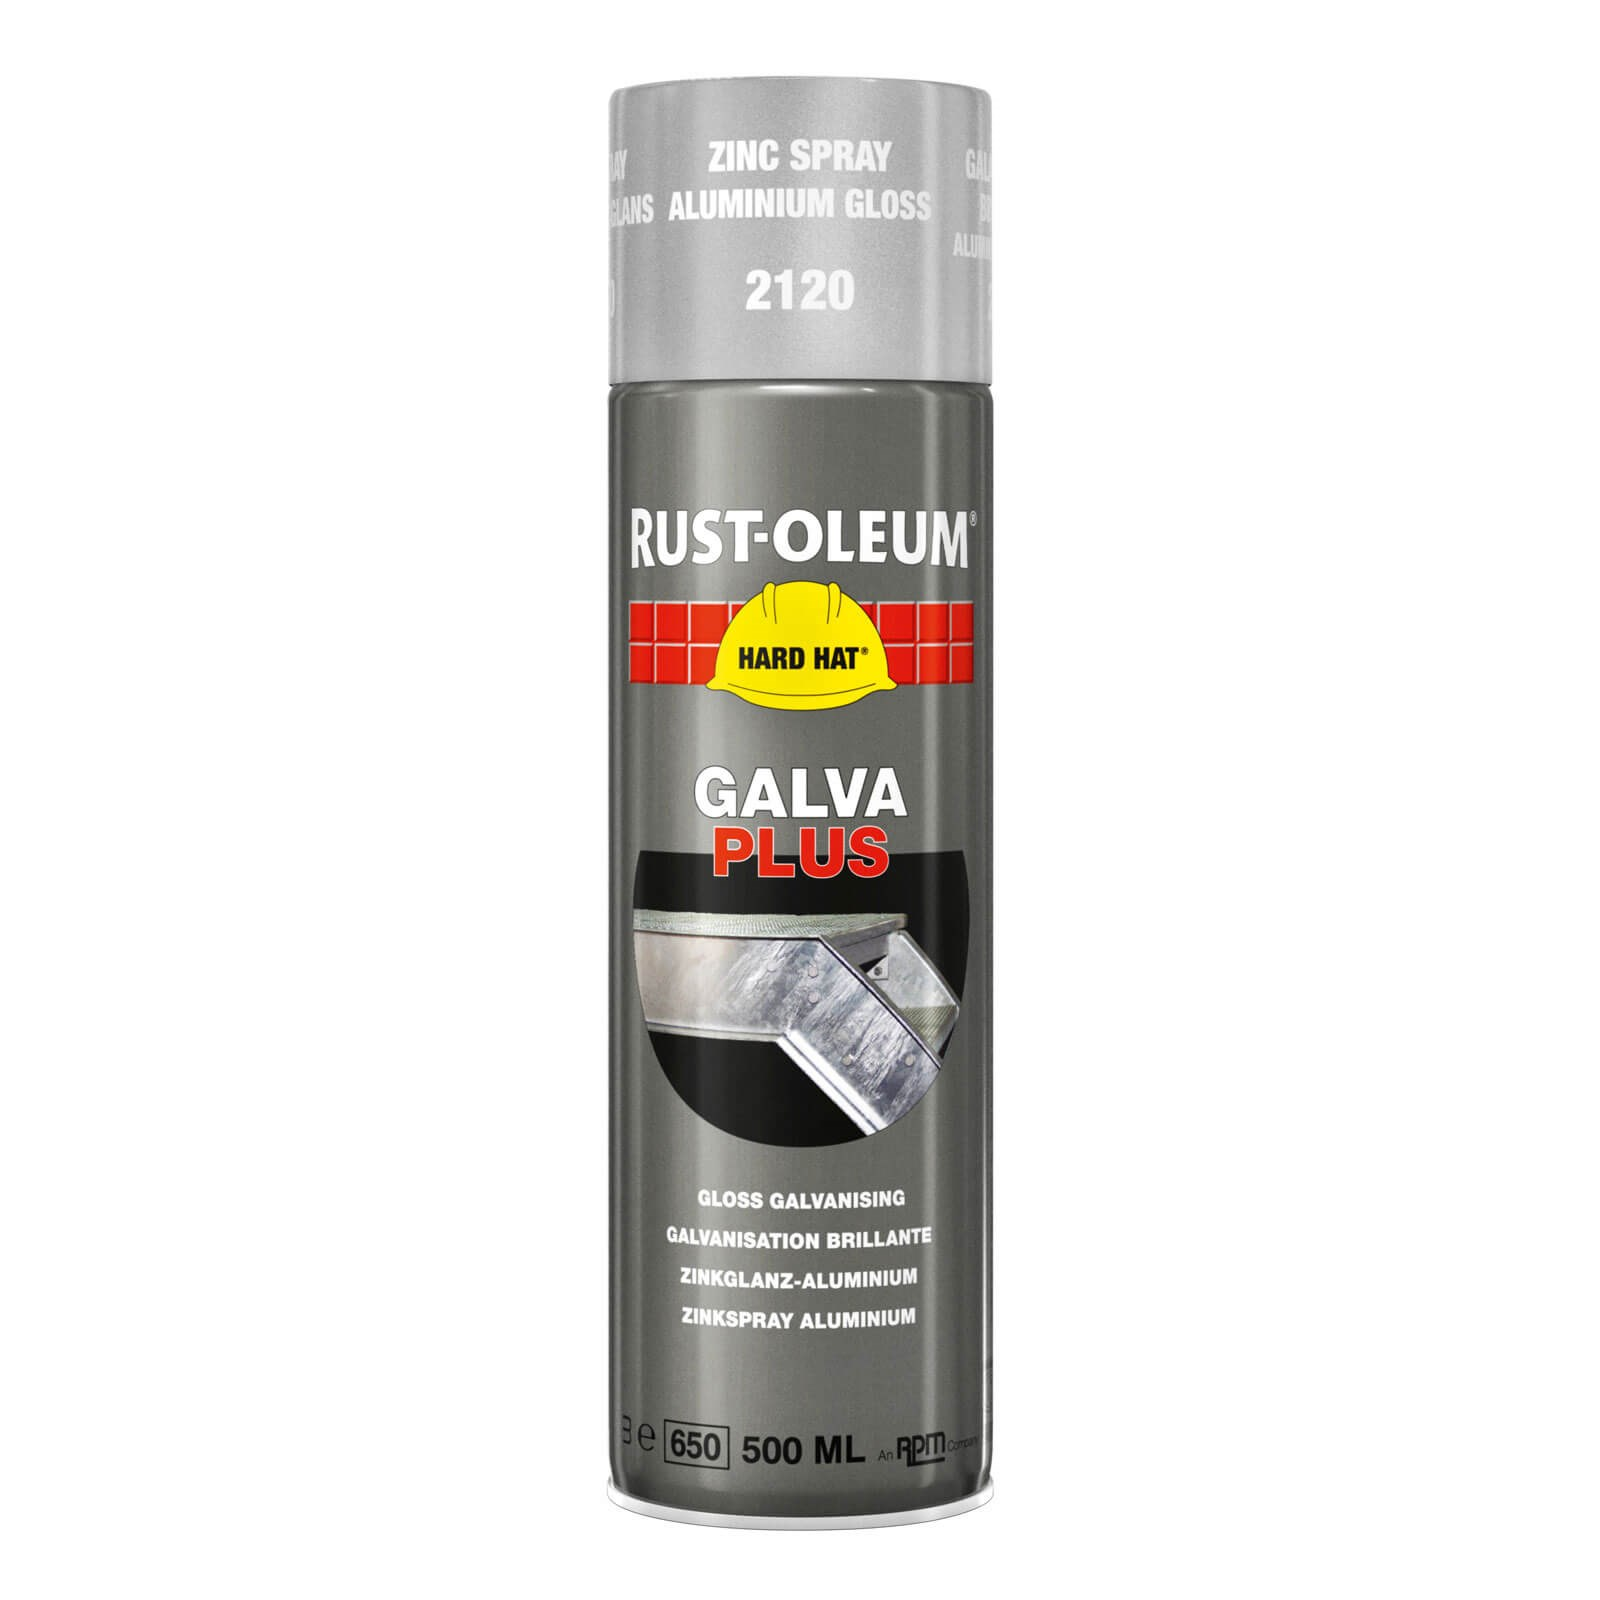 Rust Oleum Hard Hat Galva Plus Metal Spray Paint